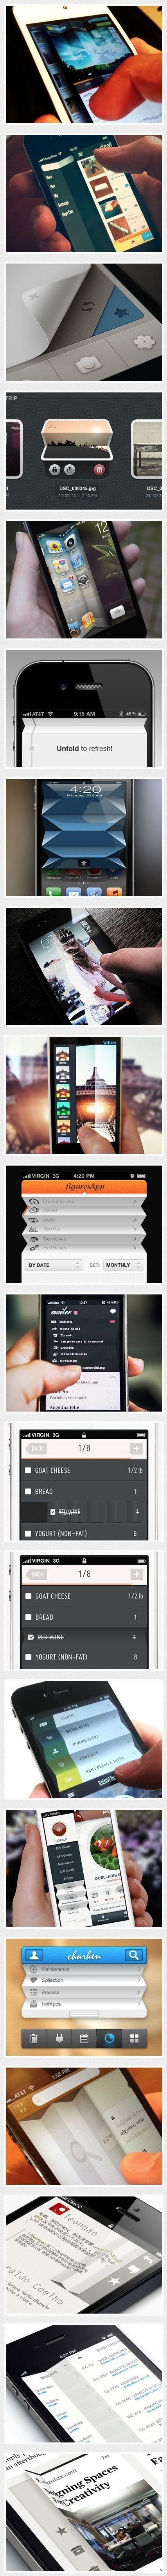 Paper Fold UI #interface #ui